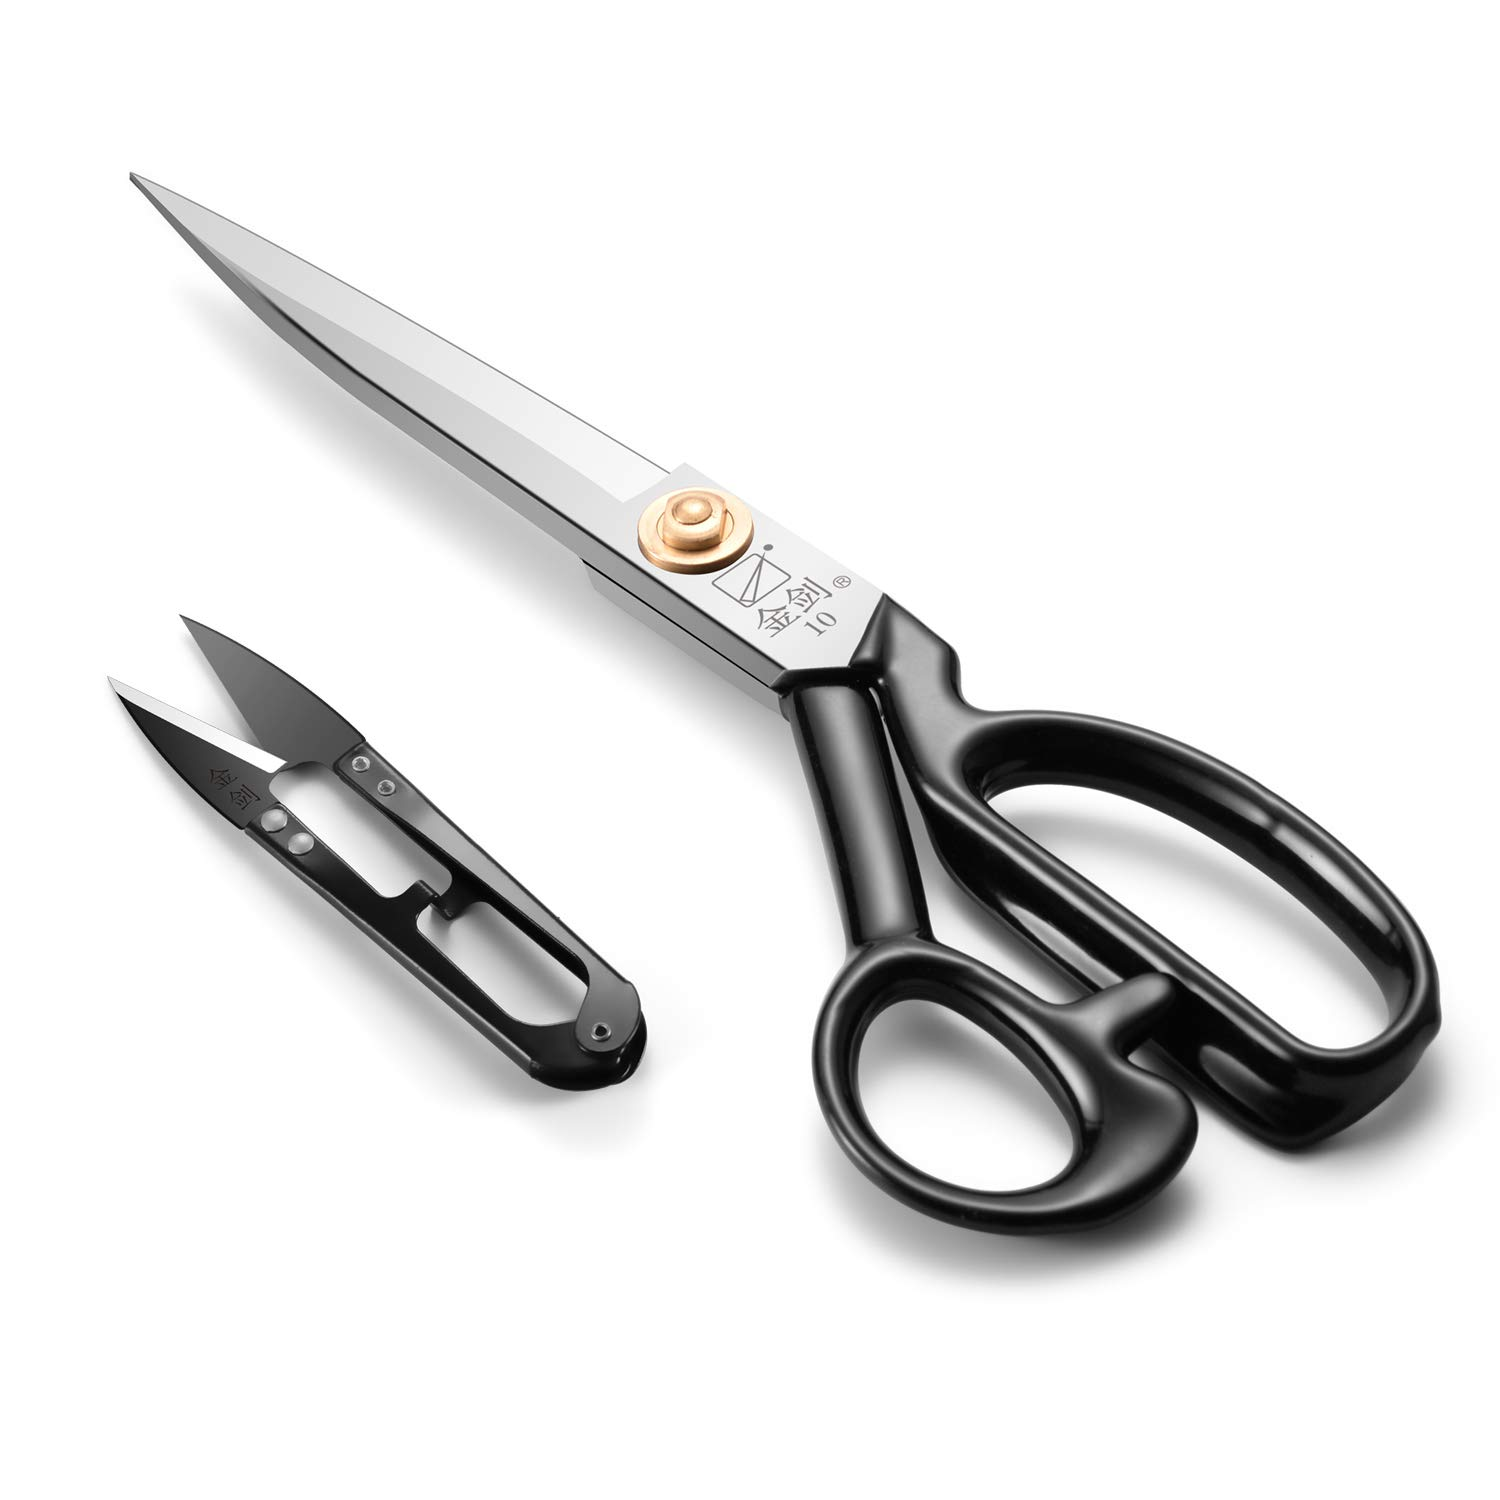 Sewing Scissors 10 Inch - Fabric Dressmaking Scissors Upholstery Office Shears for Tailors Dressmakers, Best for Cutting Fabric Leather Paper Raw Materials Heavy Duty High Carbon Steel(Right-Handed)